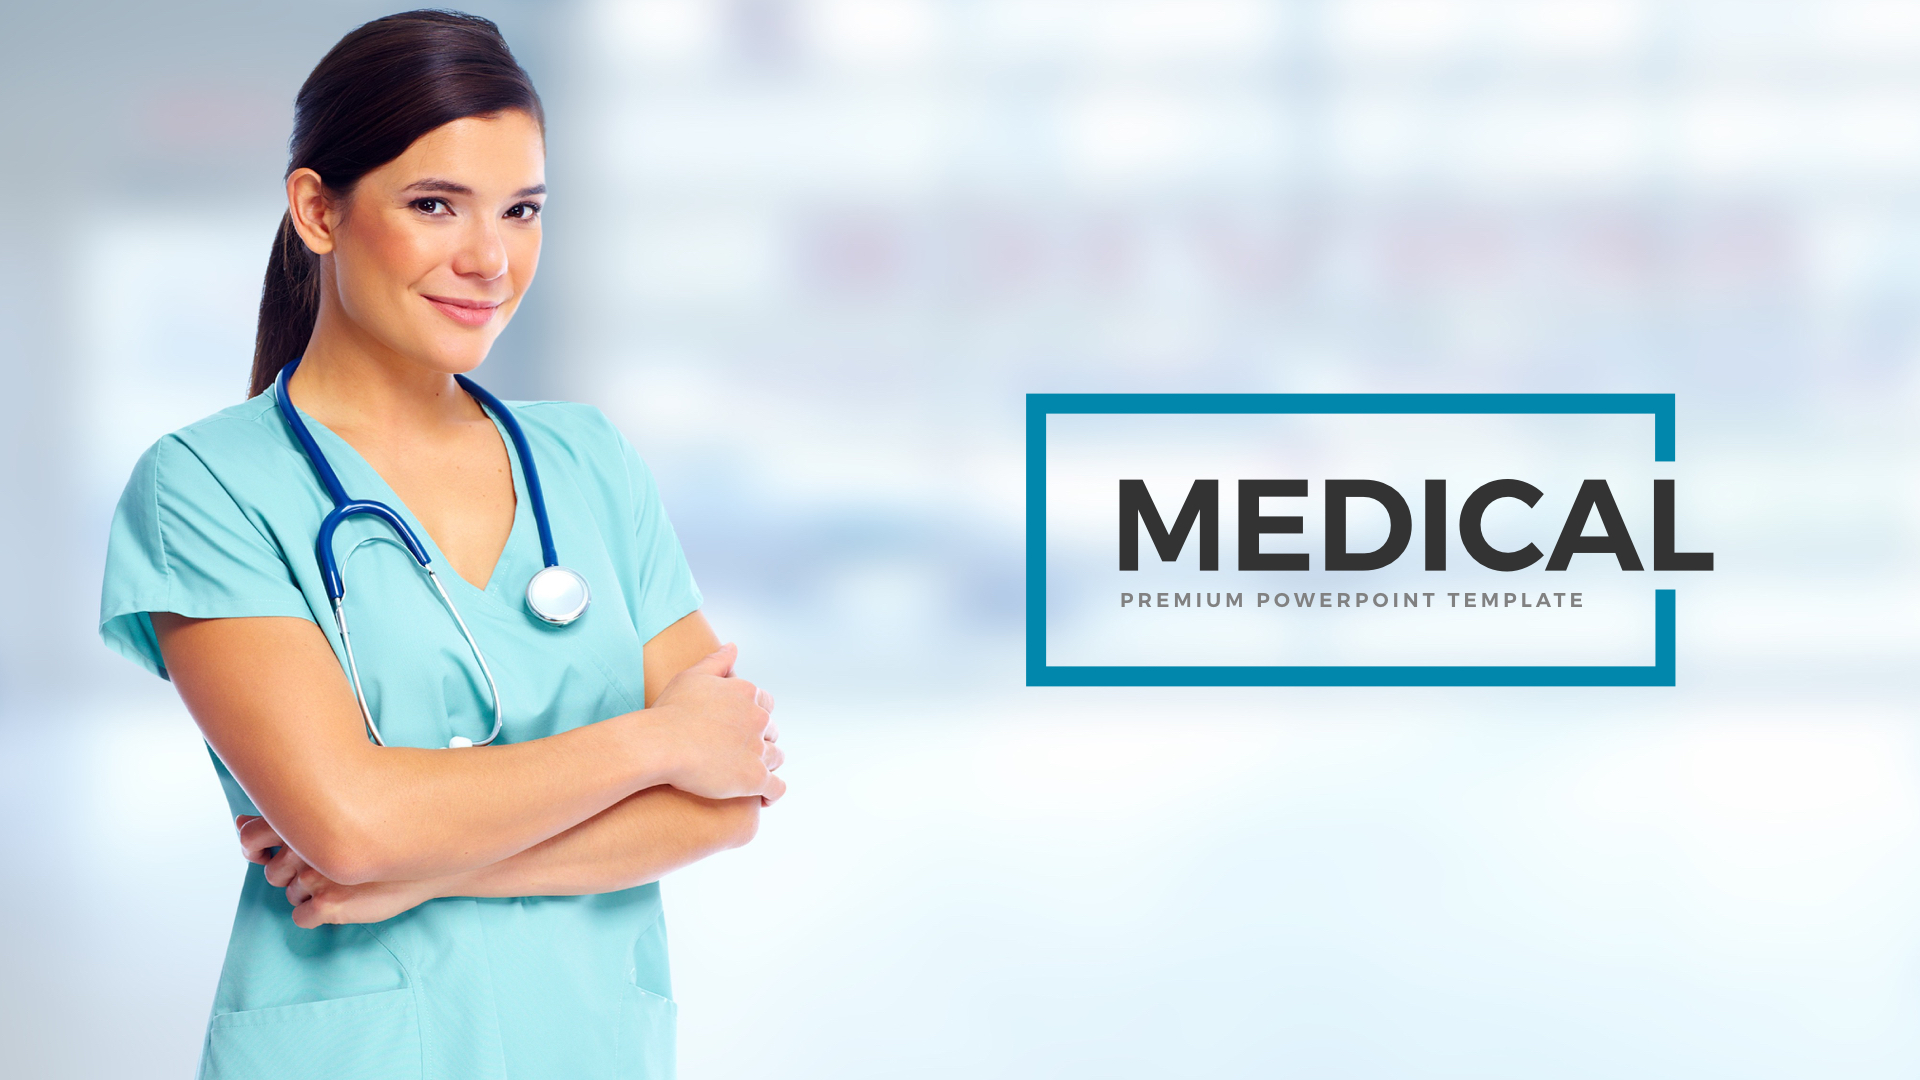 9. Medical Presentation Template